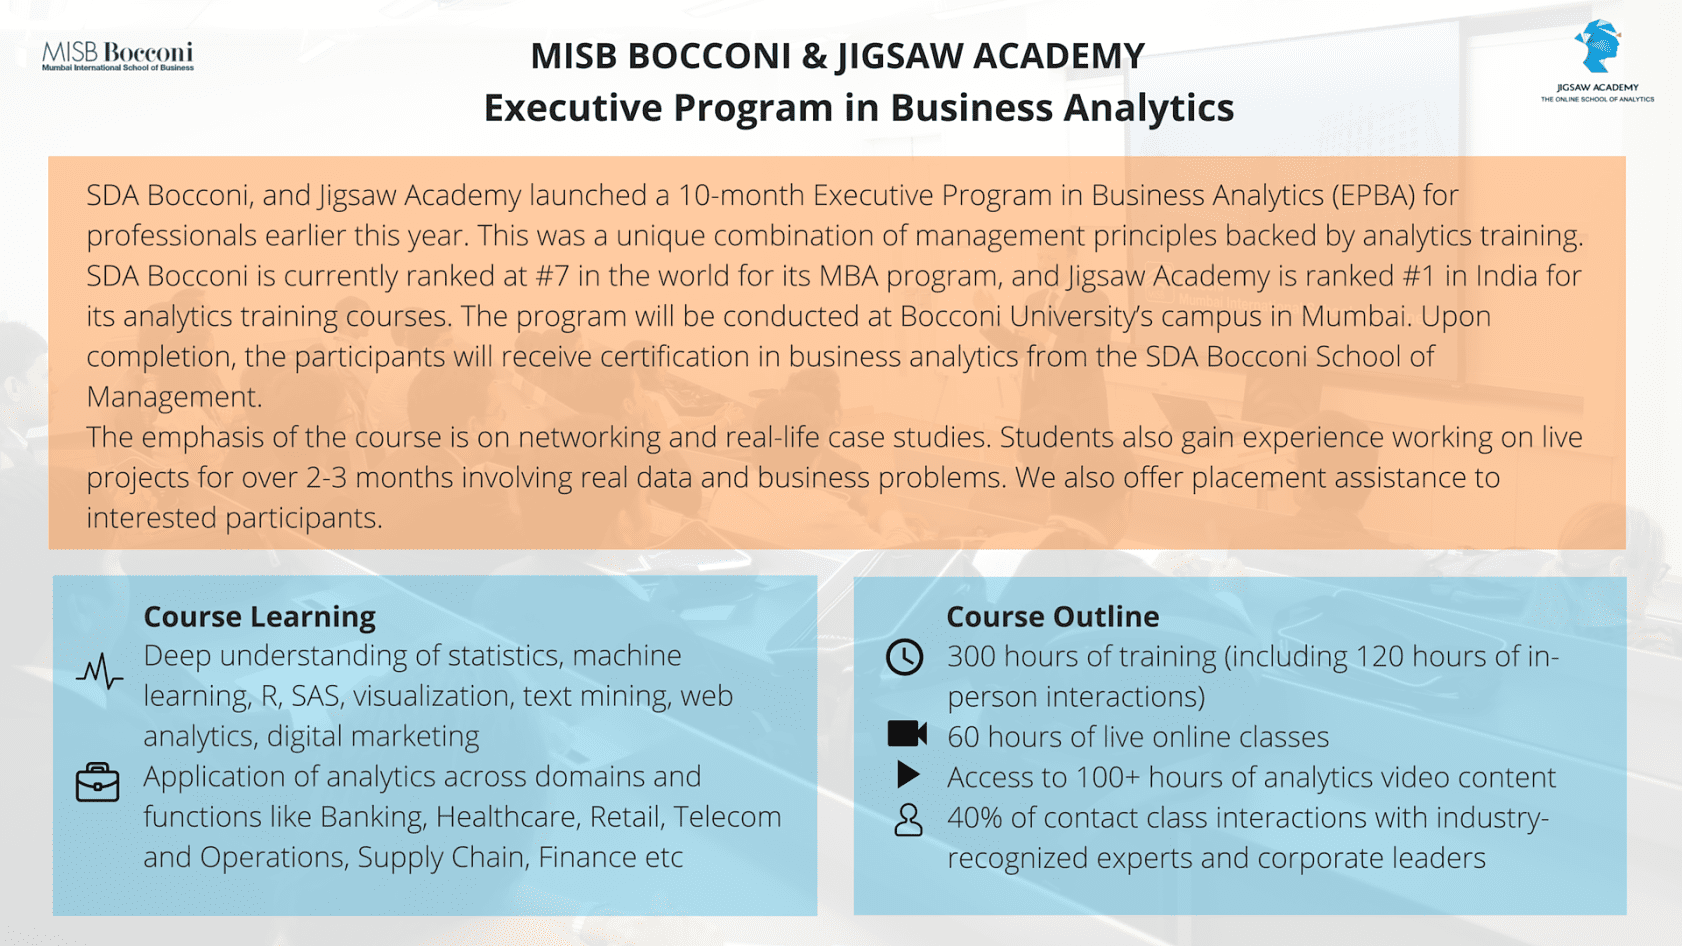 mba case study solutions india